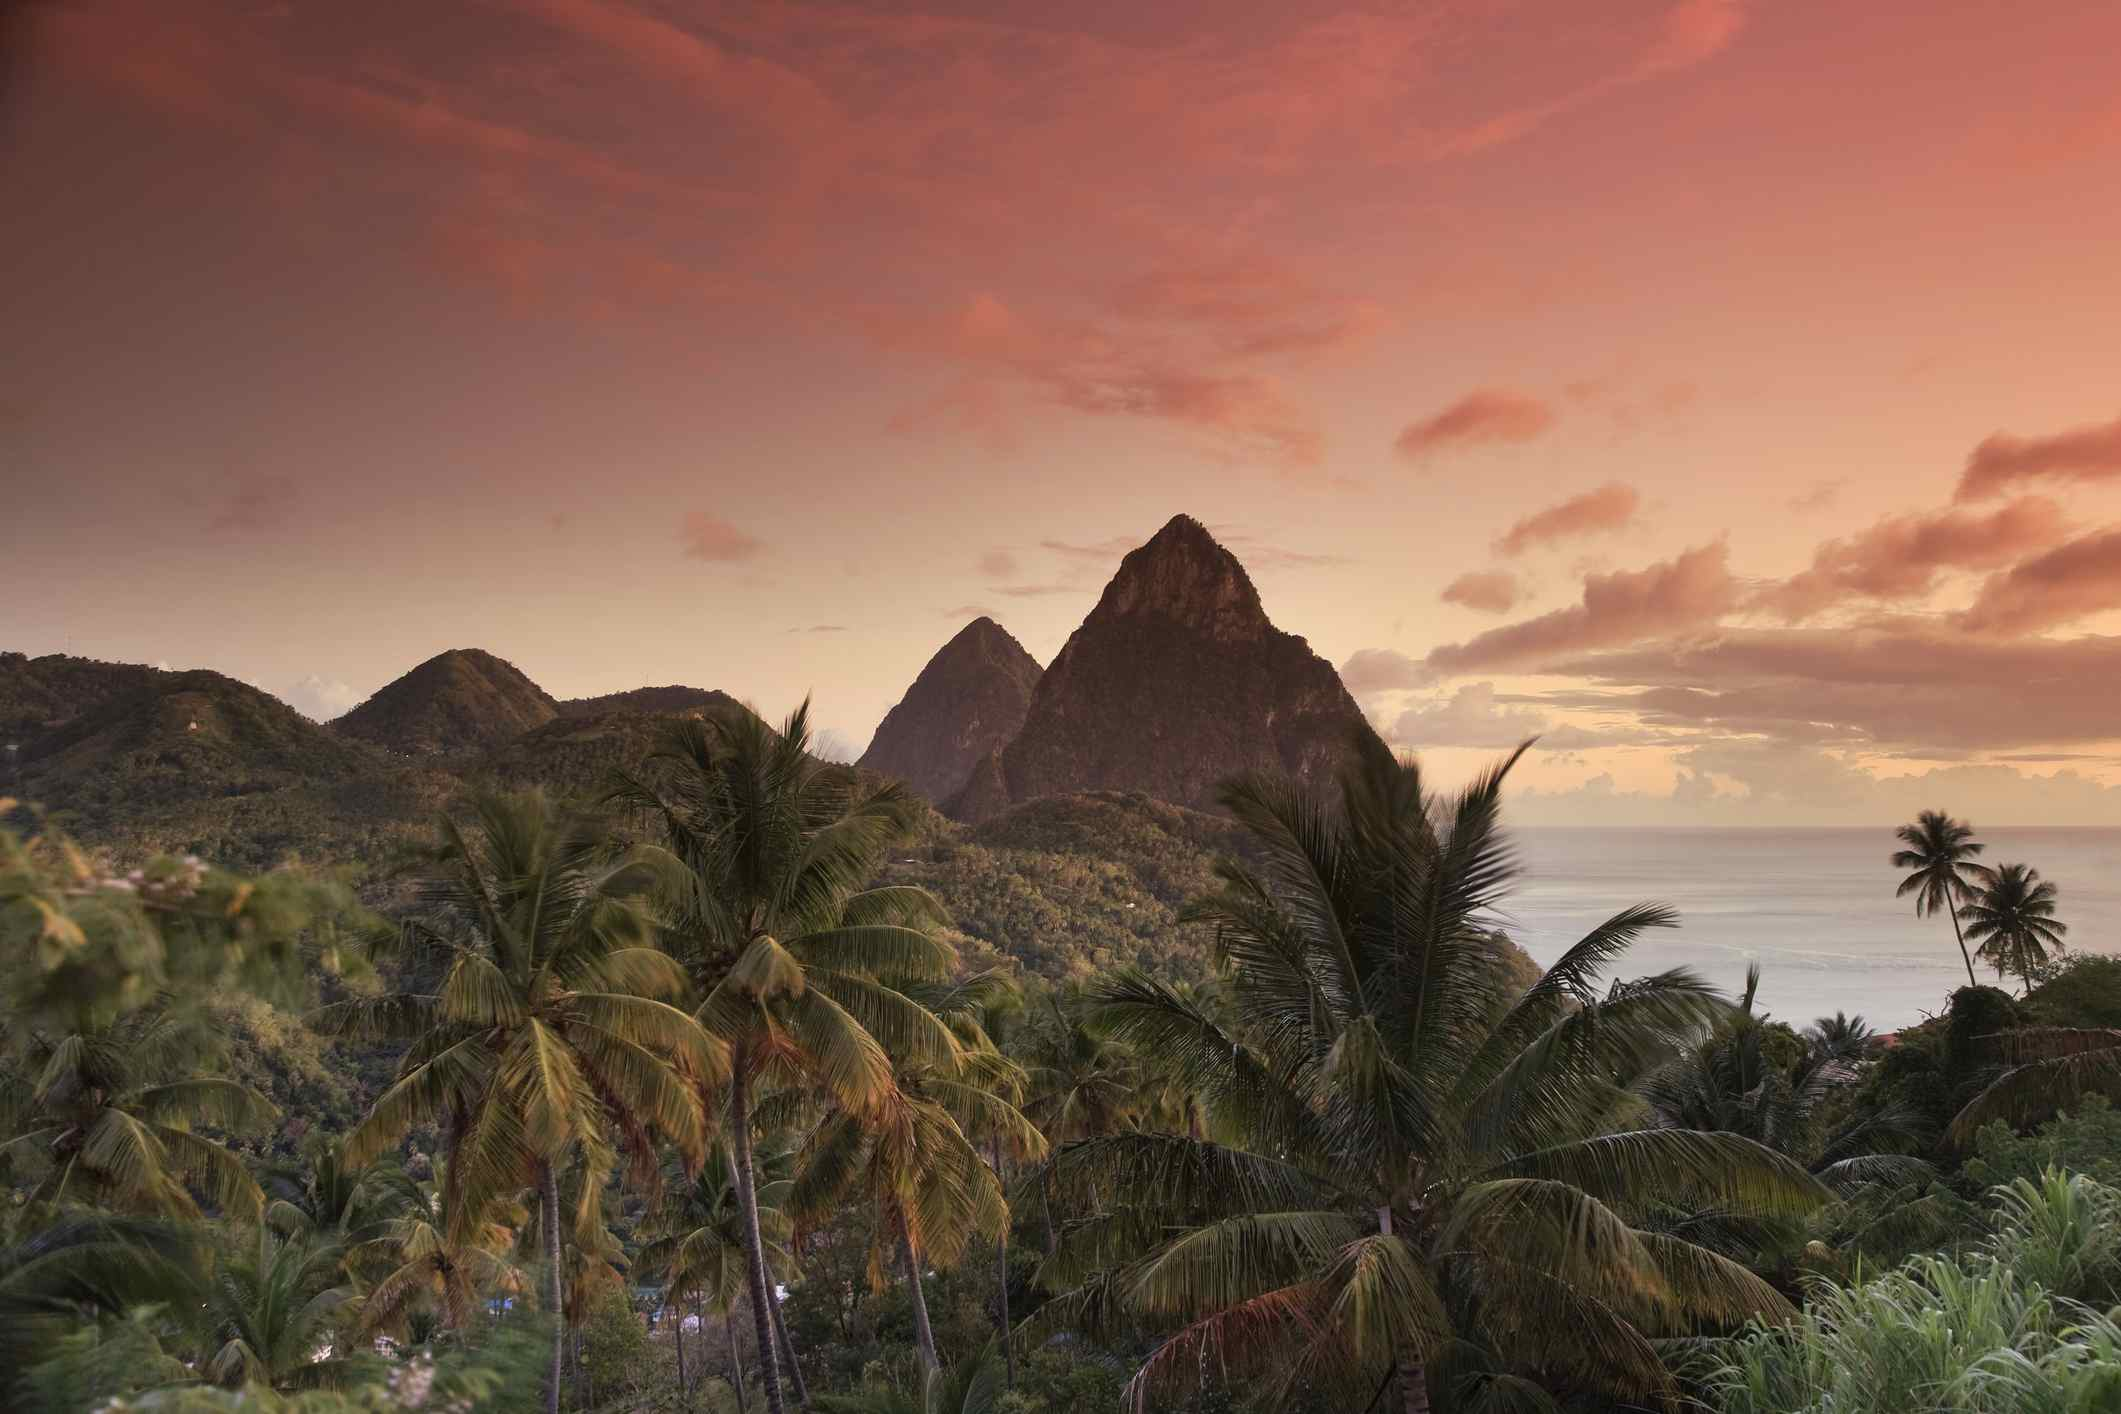 St. Lucia, Pitons and Soufriere Bay